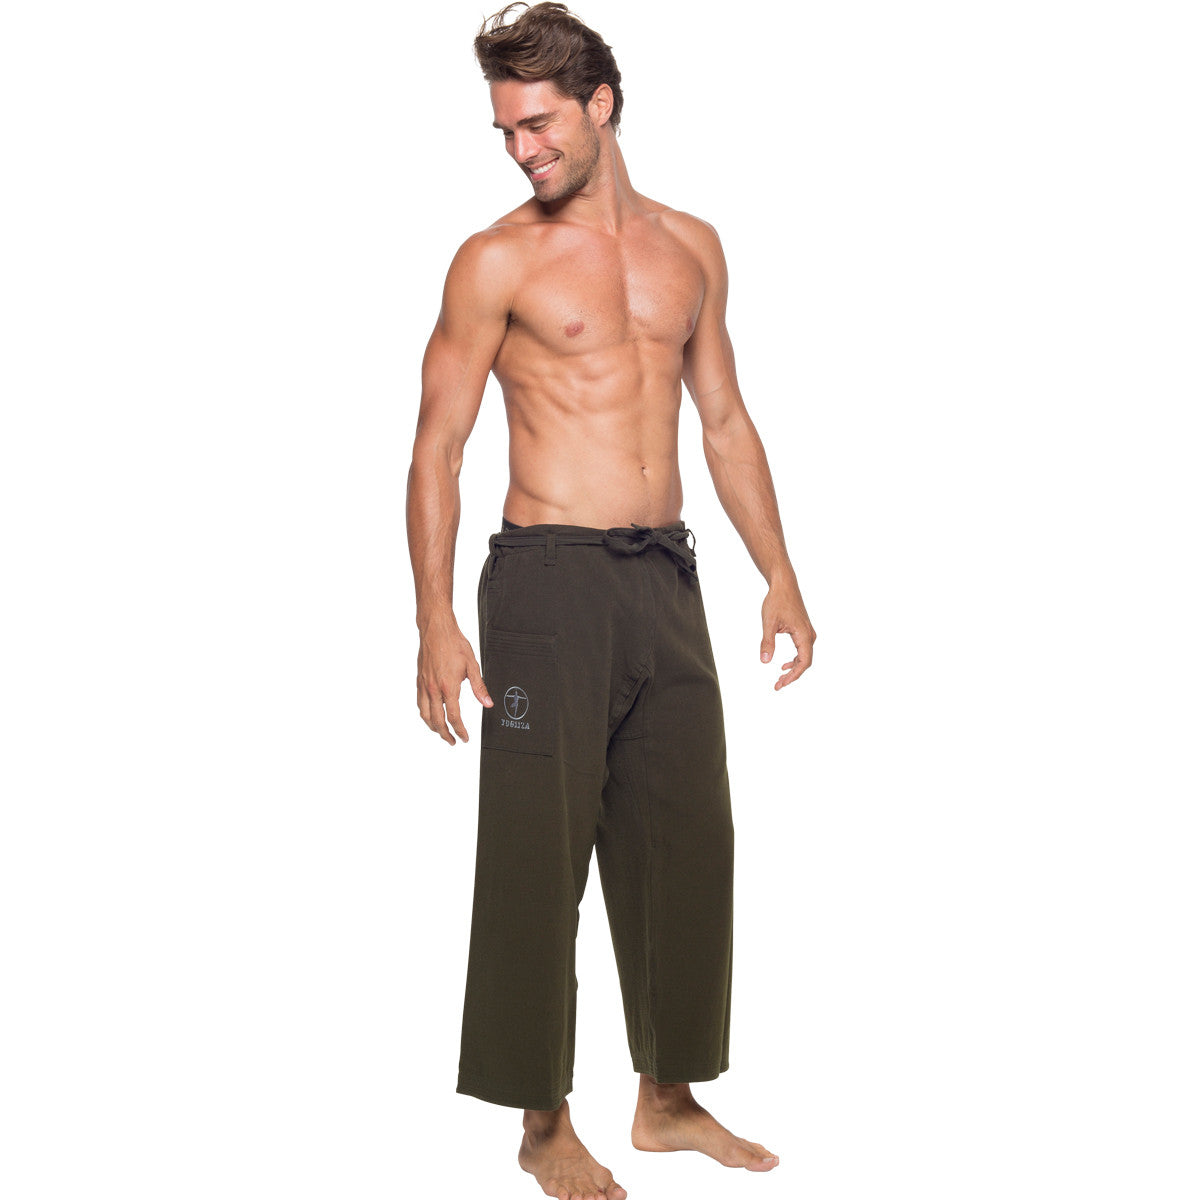 Find great deals on eBay for Mens Yoga Pants in Pants for Men. Shop with confidence.